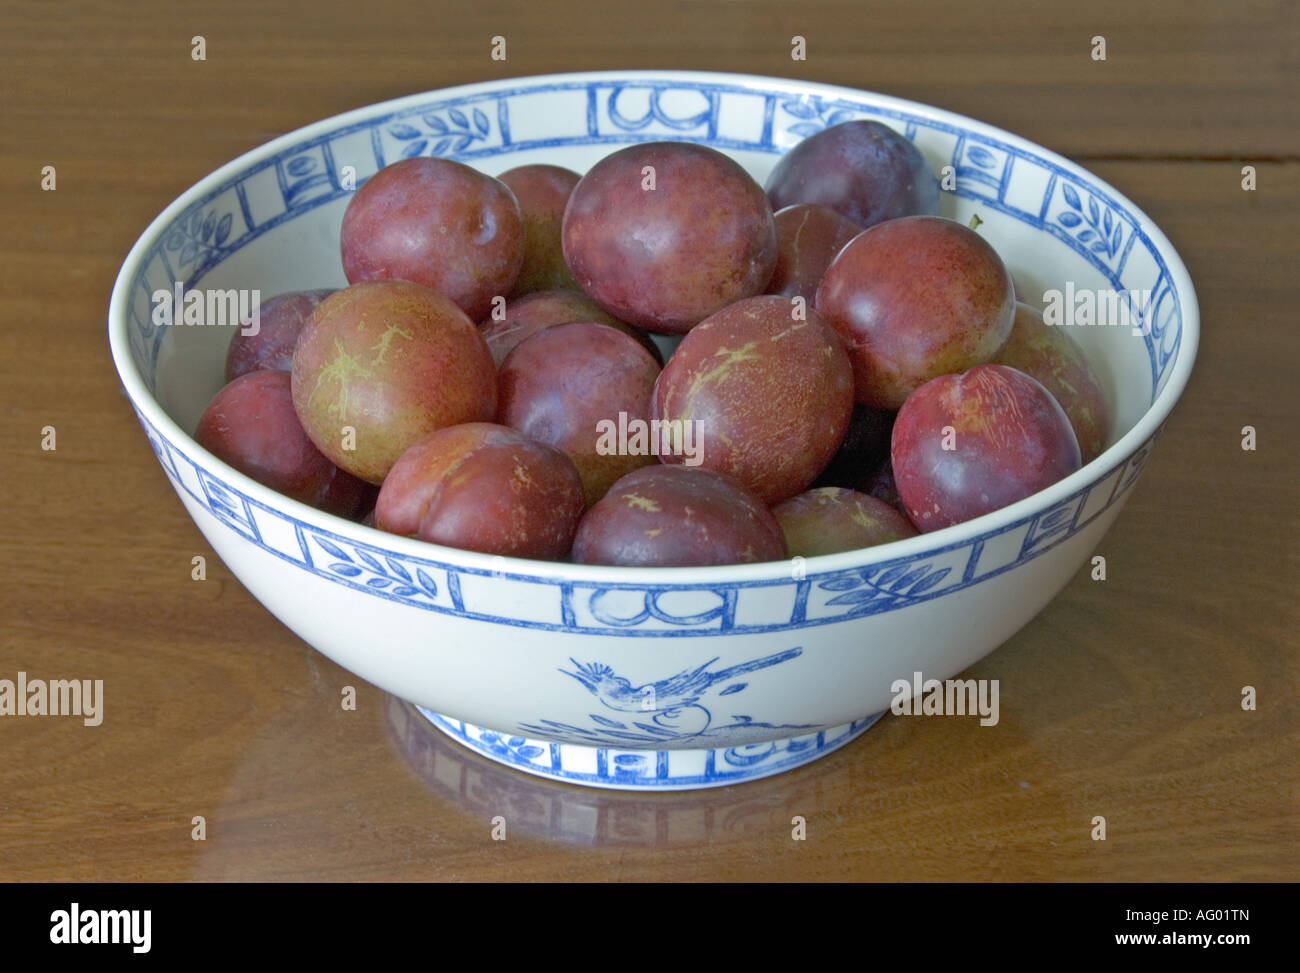 Marjorie s Seedling plums in a French Porcelain bowl - Stock Image